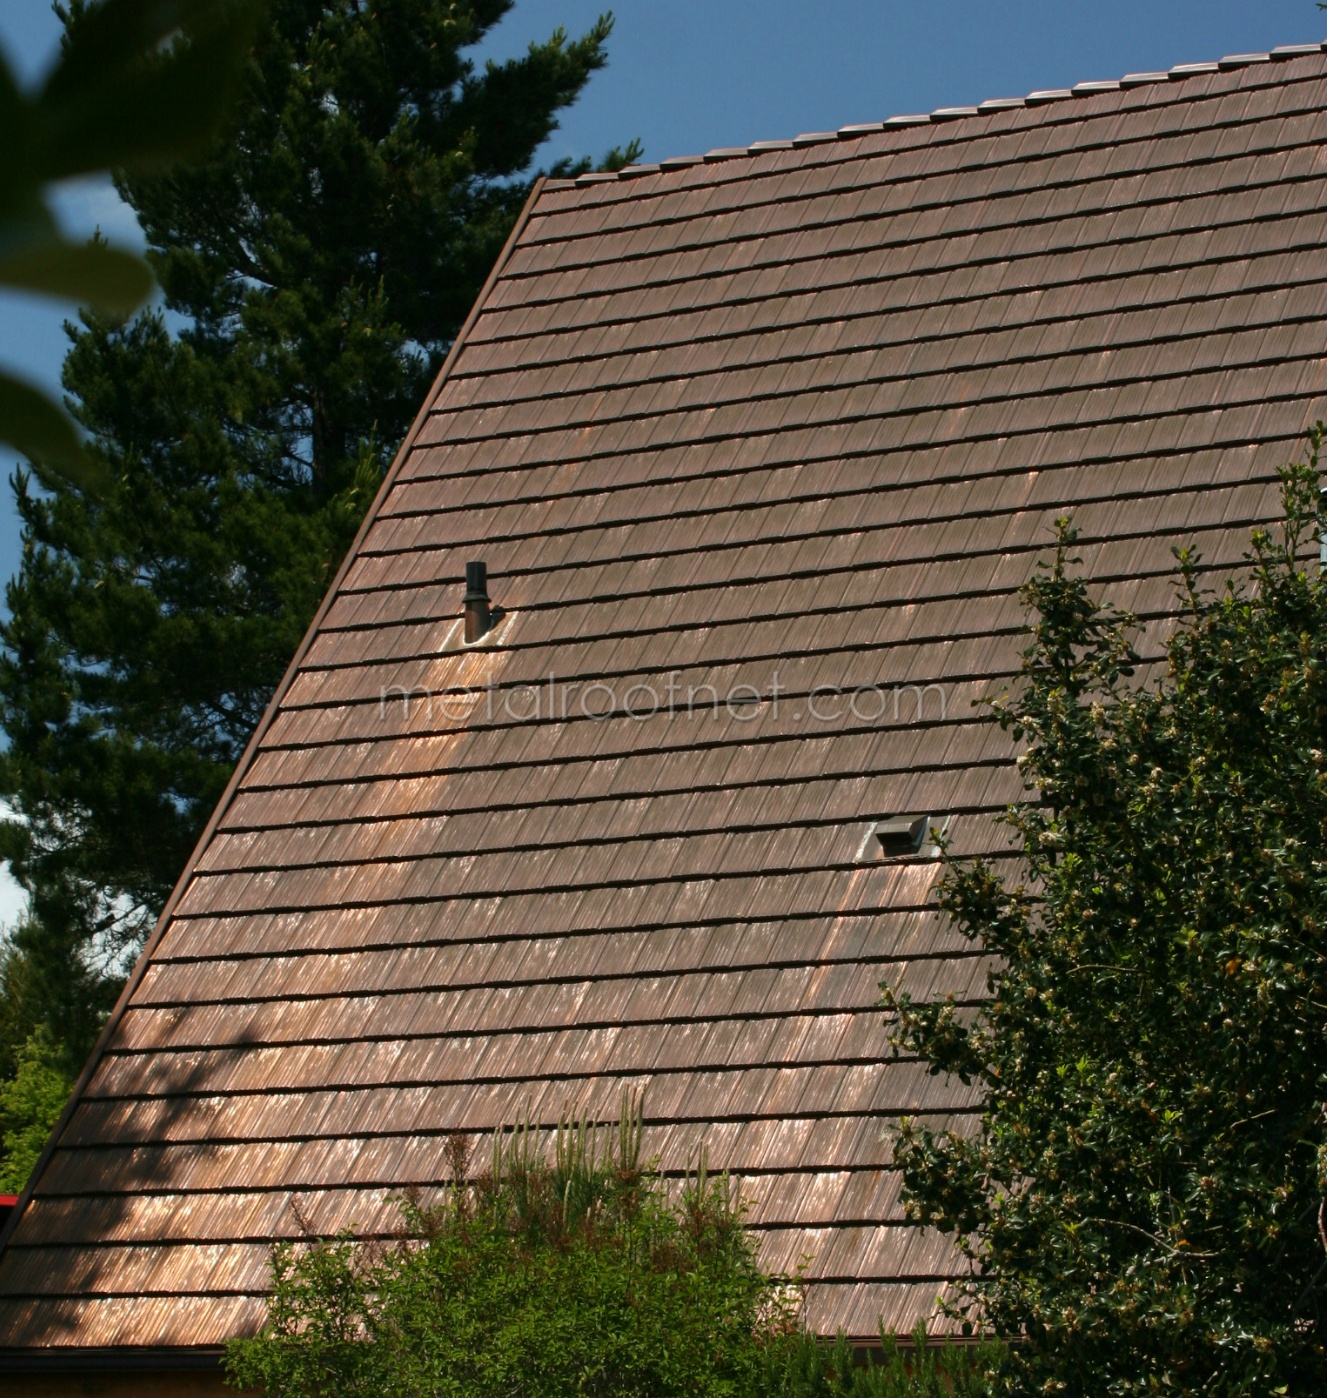 What Does a Copper Roof Cost?